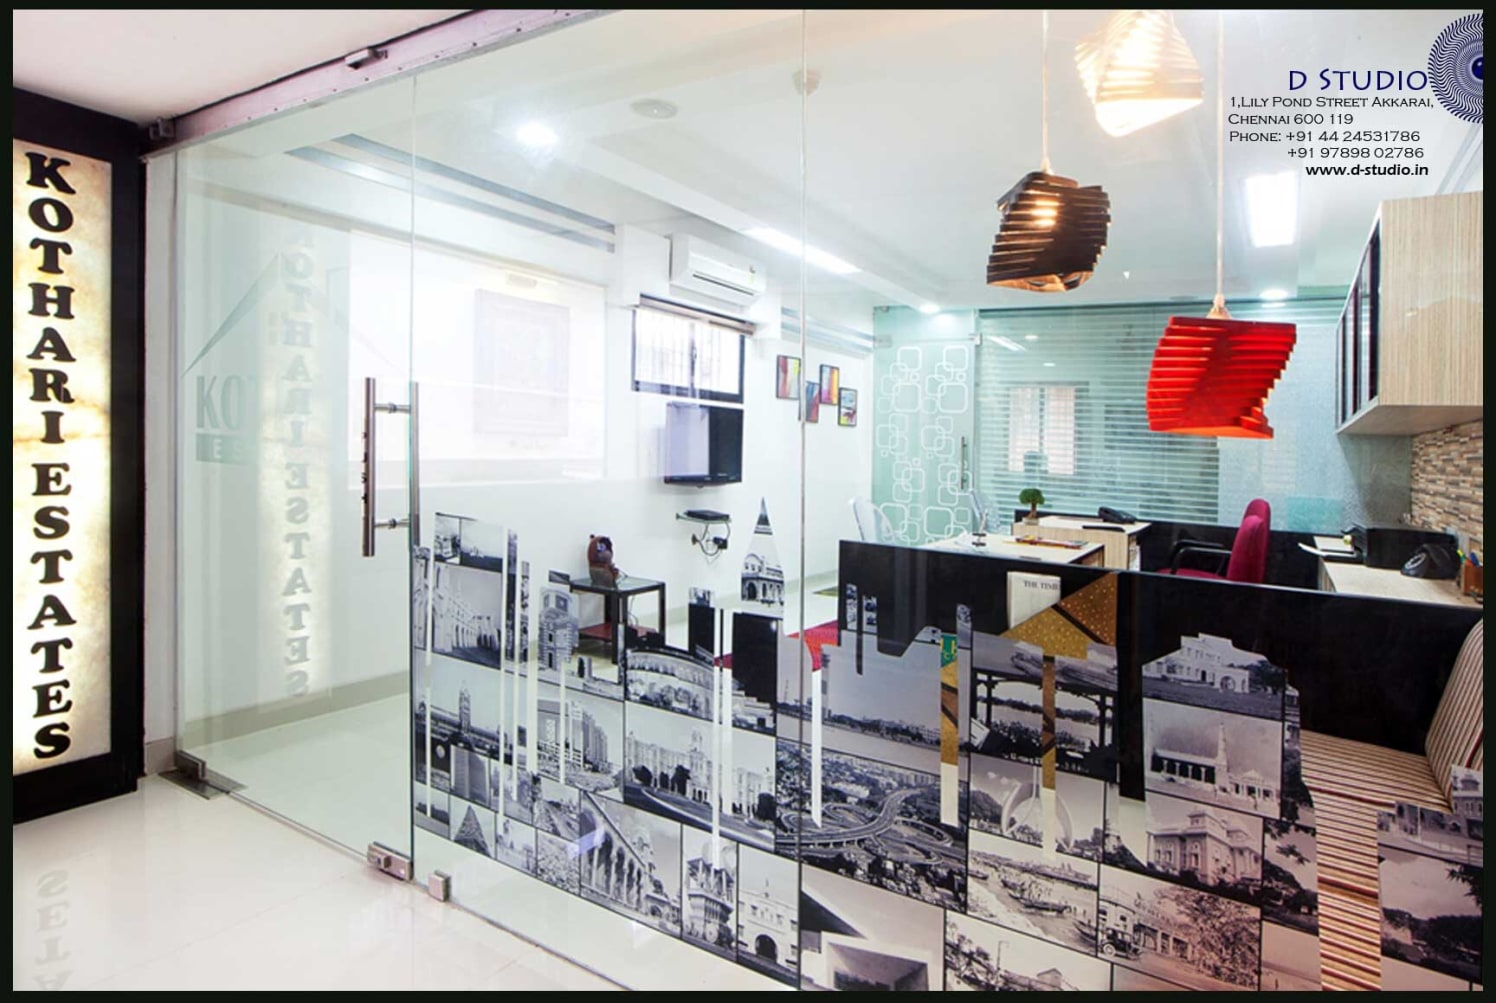 Eclectic Office Cabin with monochrome collage by Sarath Sasi P Modern | Interior Design Photos & Ideas